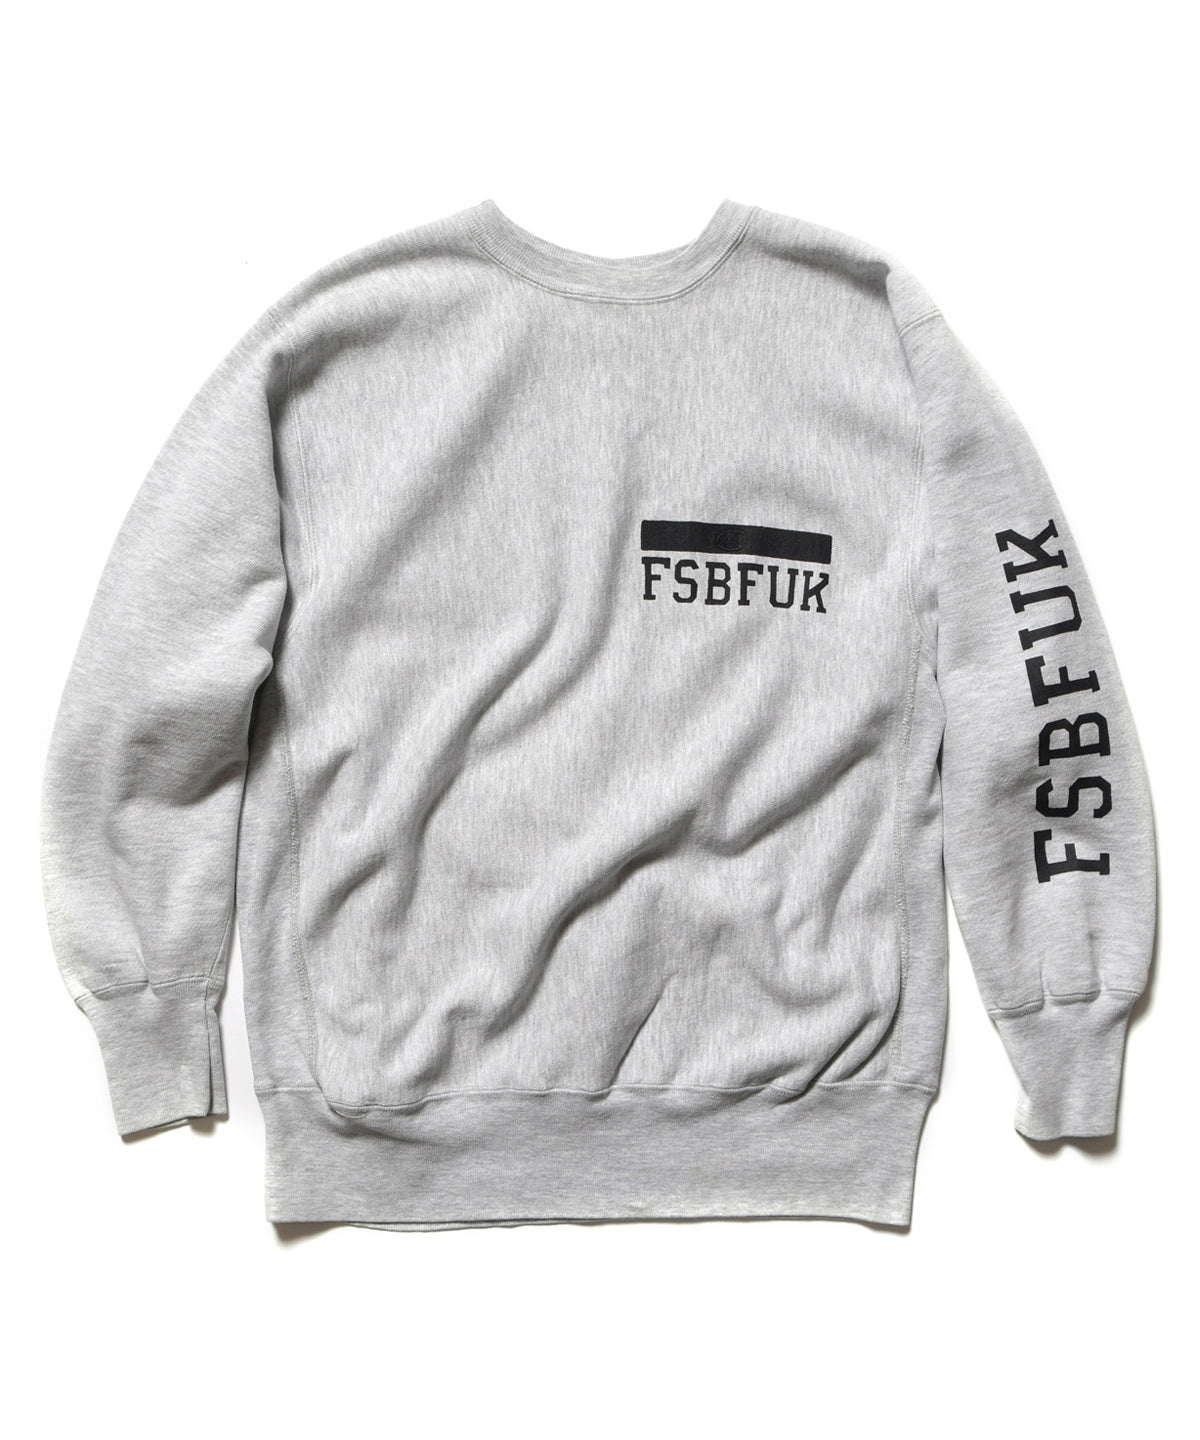 "KIYONAGA&CO. x UA&SONS x FUJITO ""FSBFUK"" RE-MAKE CREWNECK SWEAT"